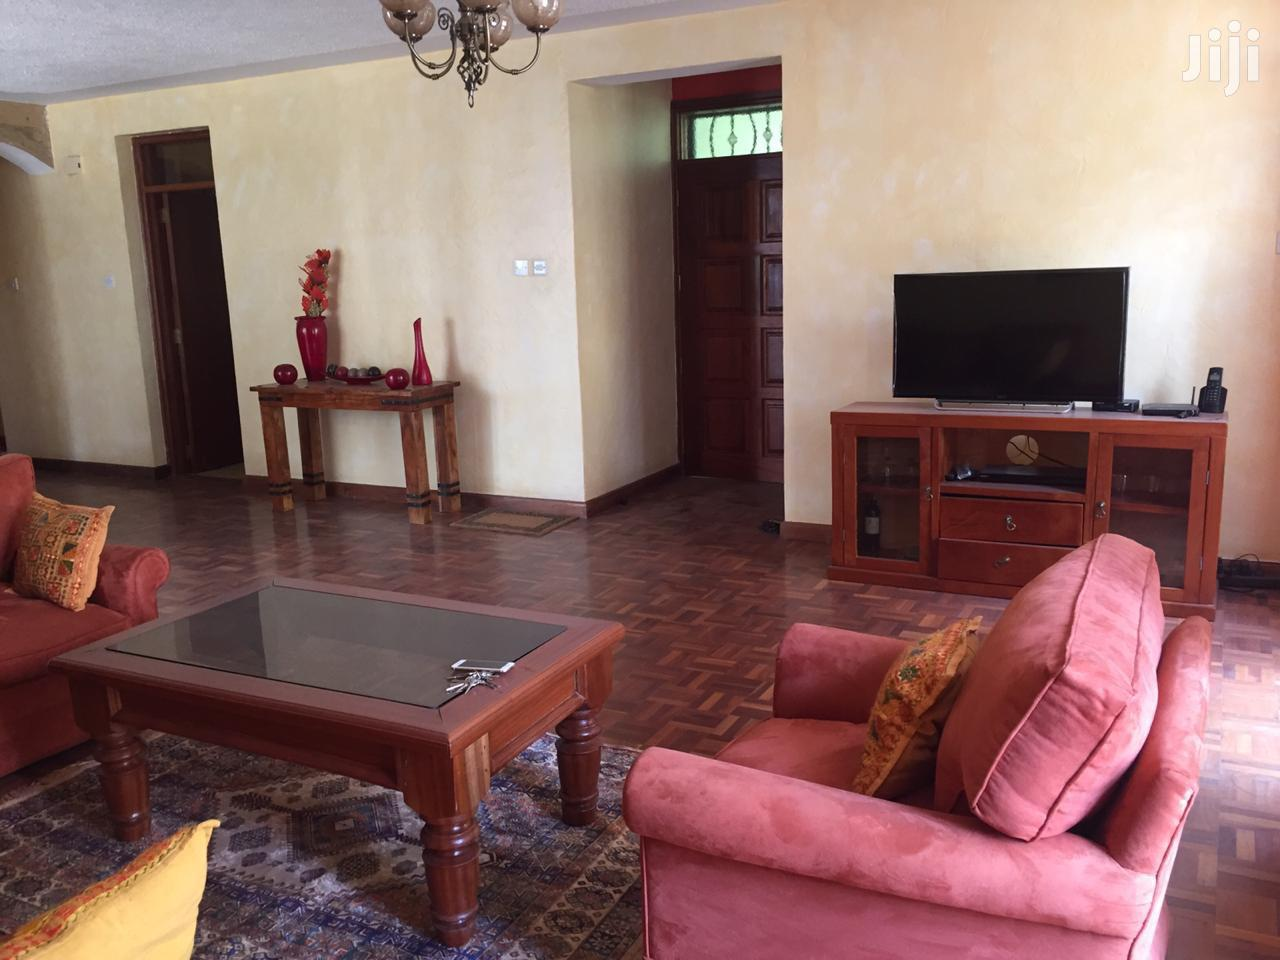 3 Bedroom Fully Furnished In Lavington   Houses & Apartments For Rent for sale in Lavington, Nairobi, Kenya